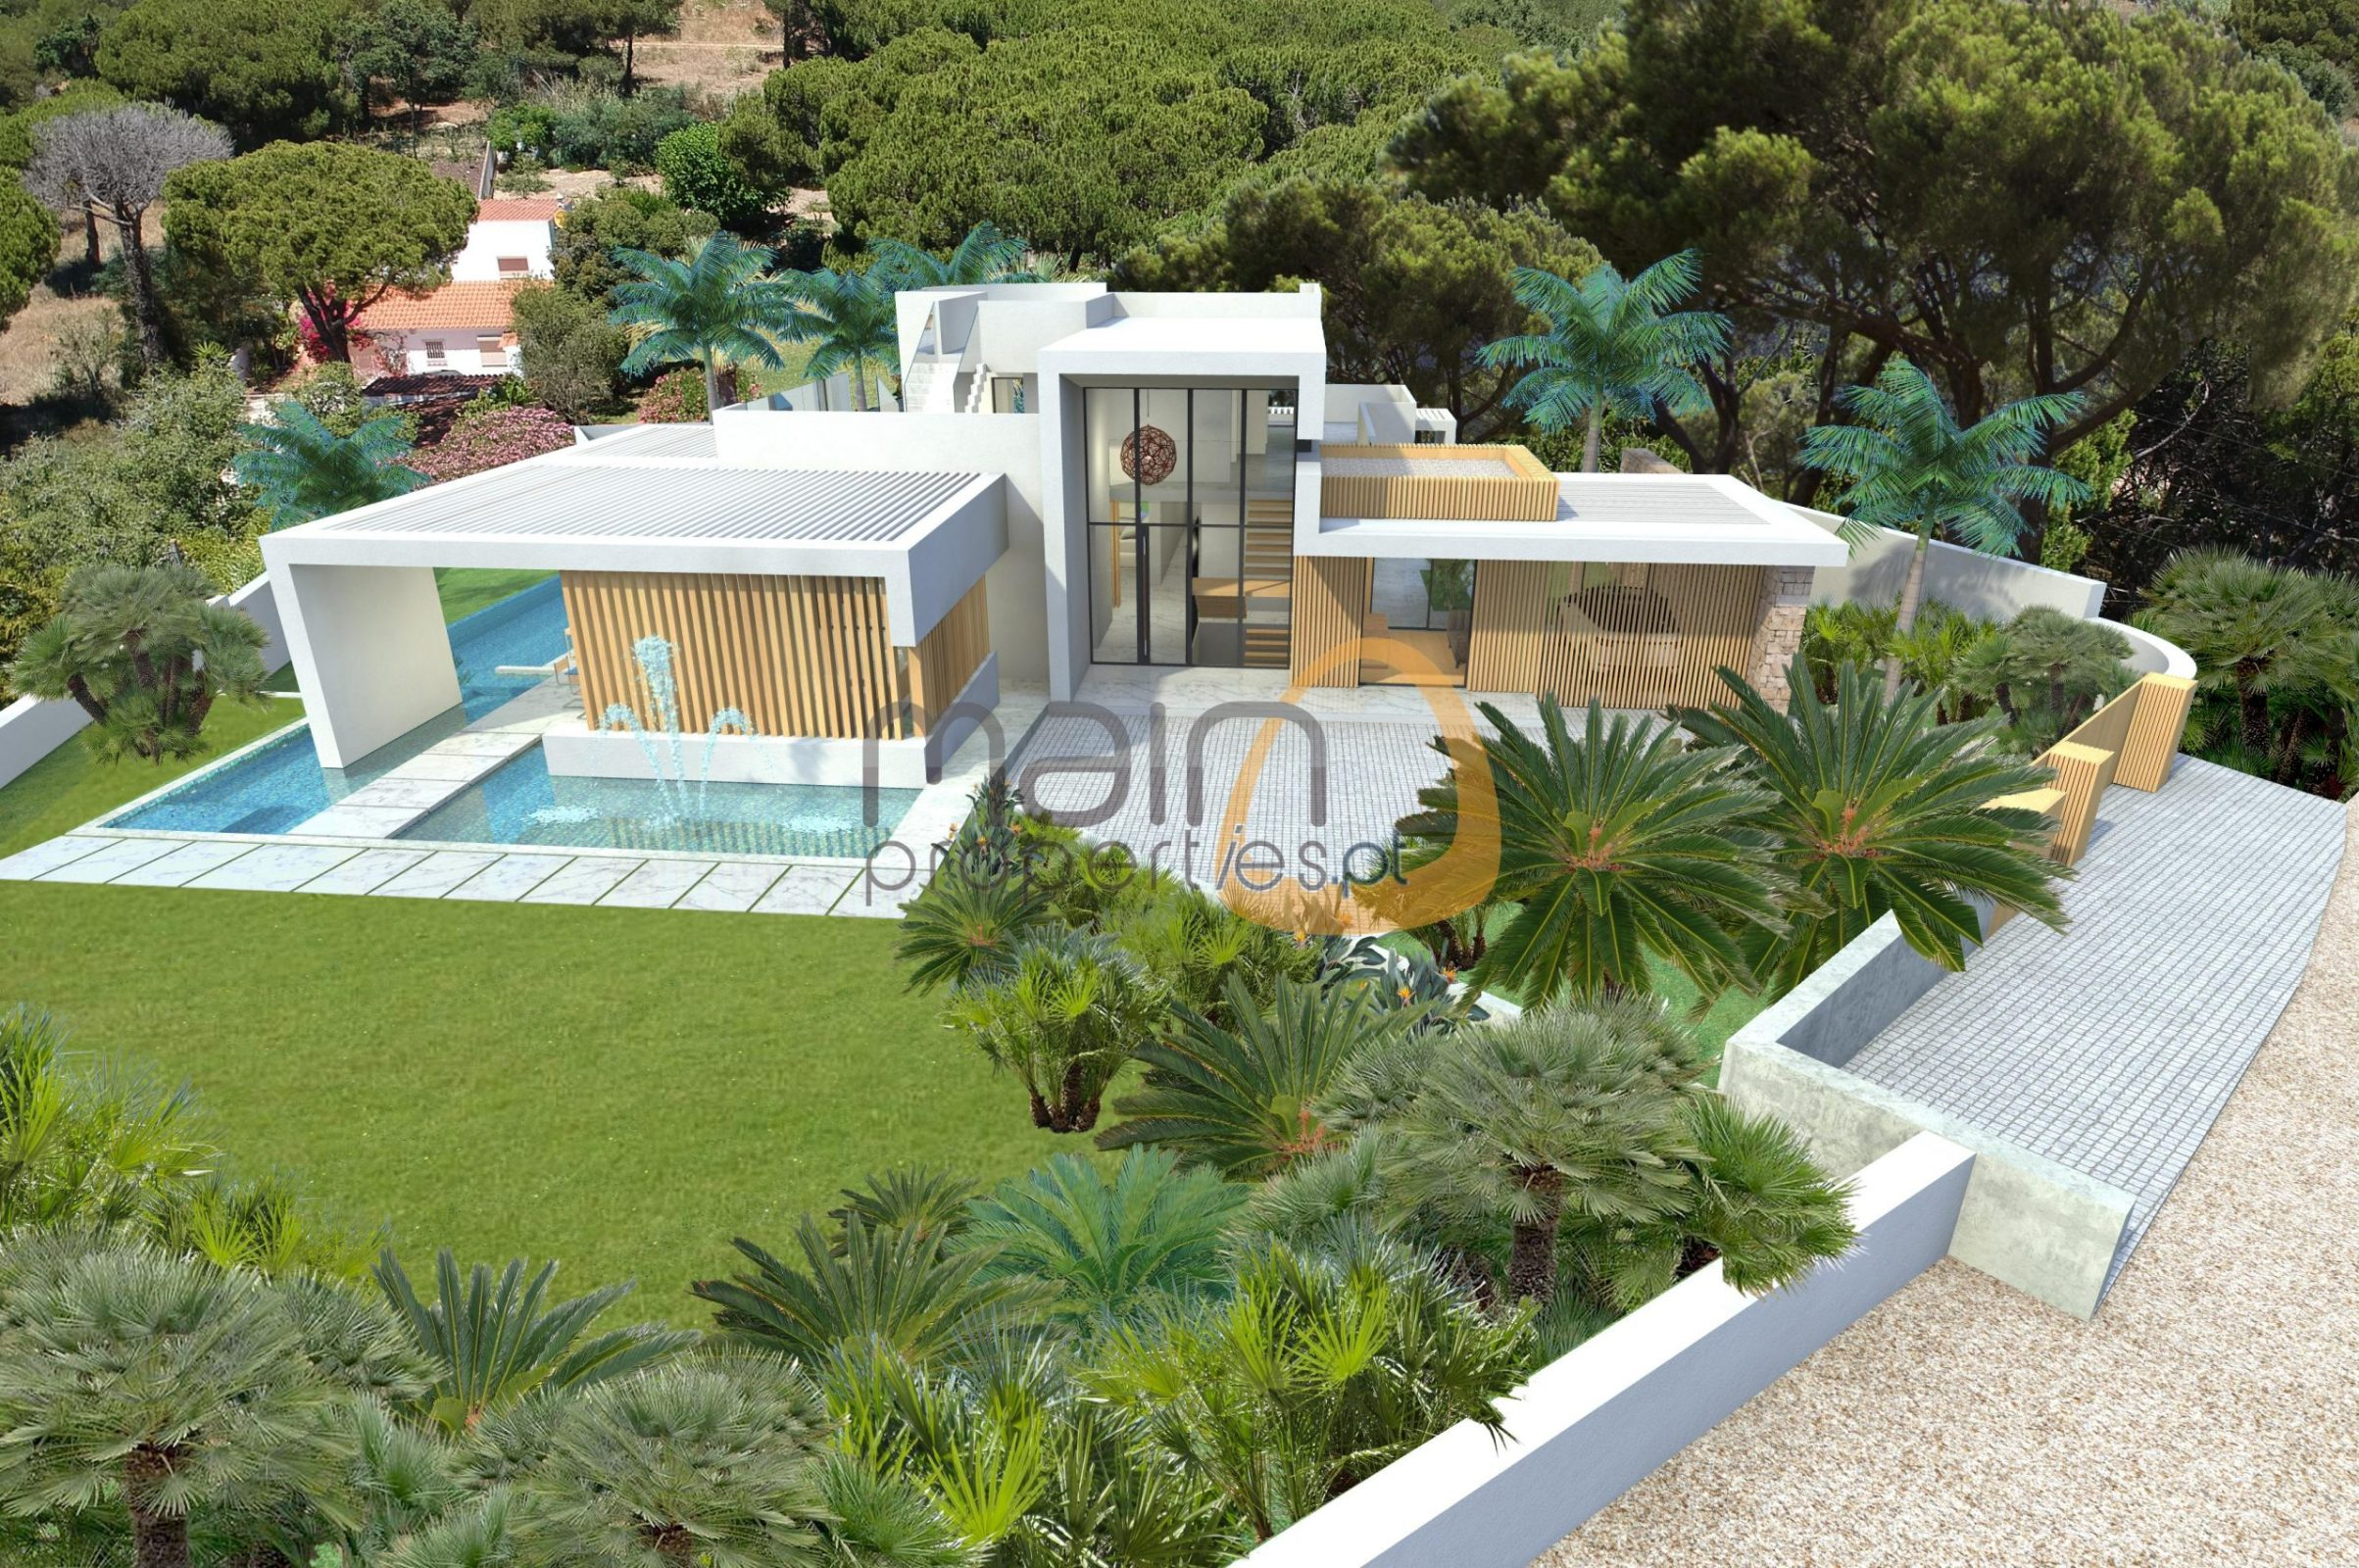 Plot with project for new house in Vale do Lobo.